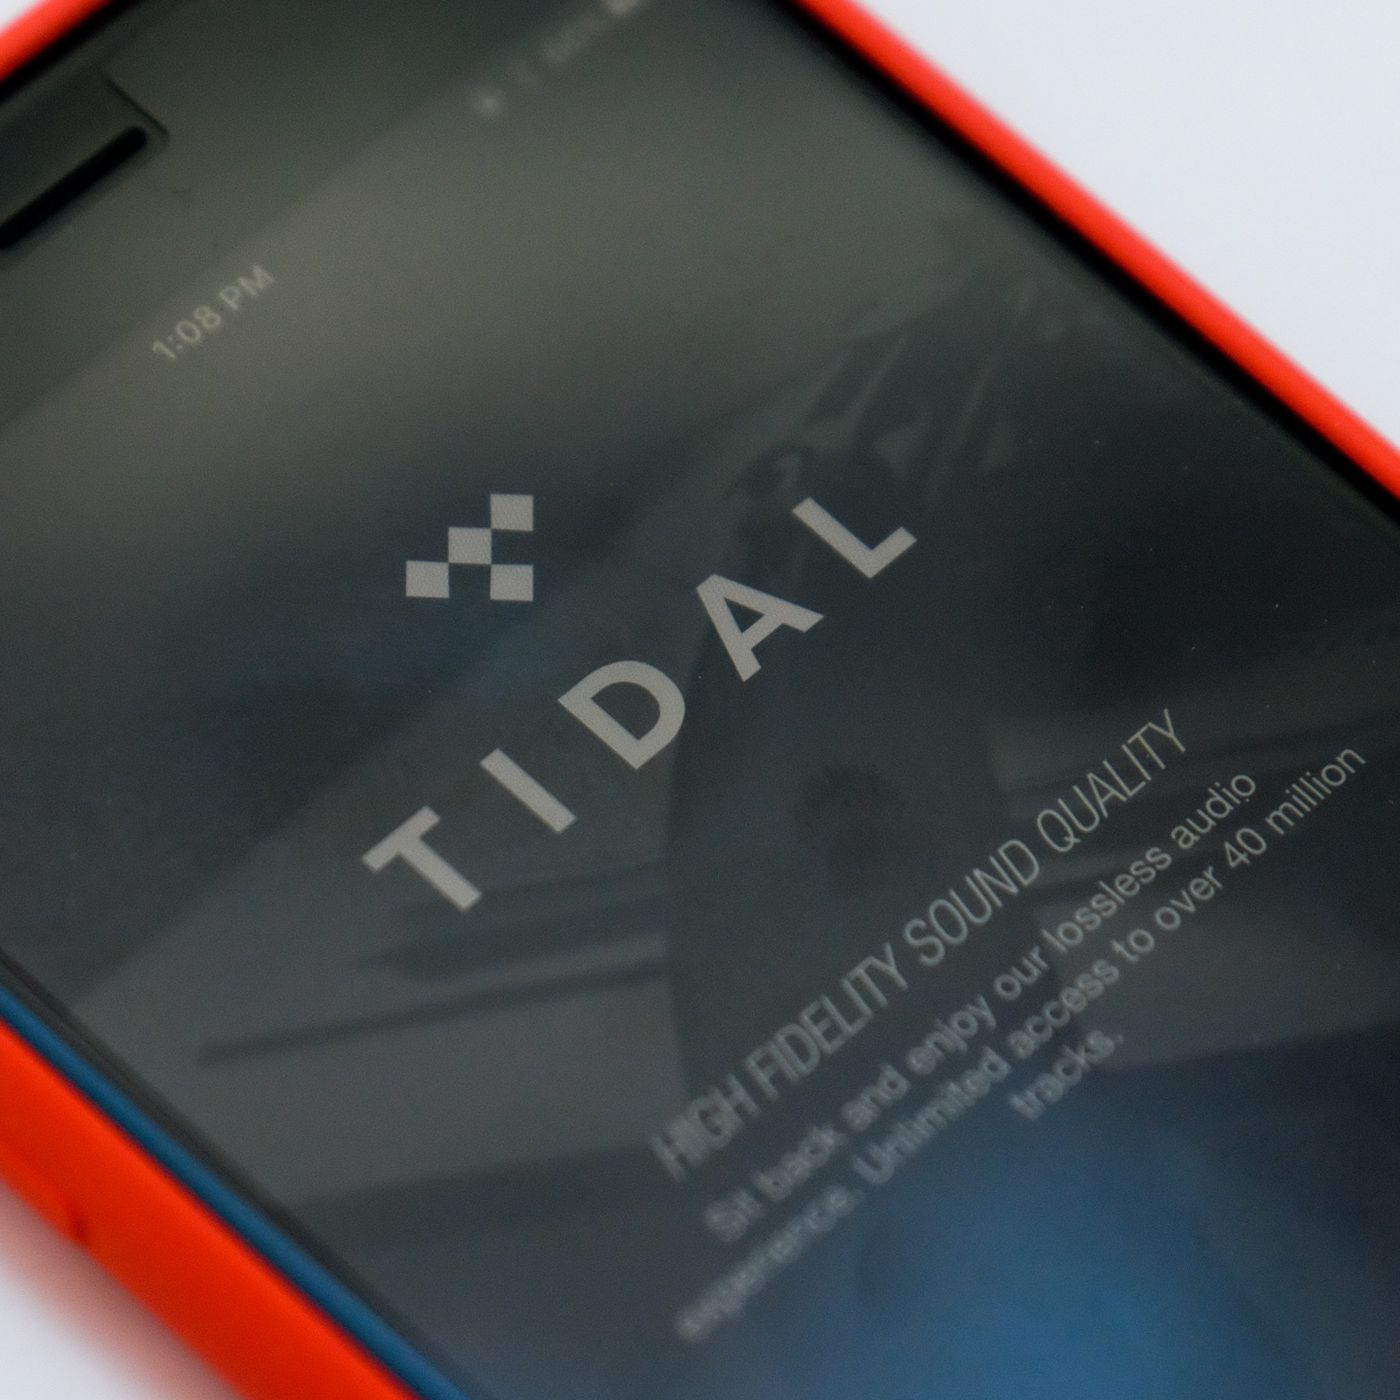 Tidal is charging ex-customers $19 99 for no reason - The Verge